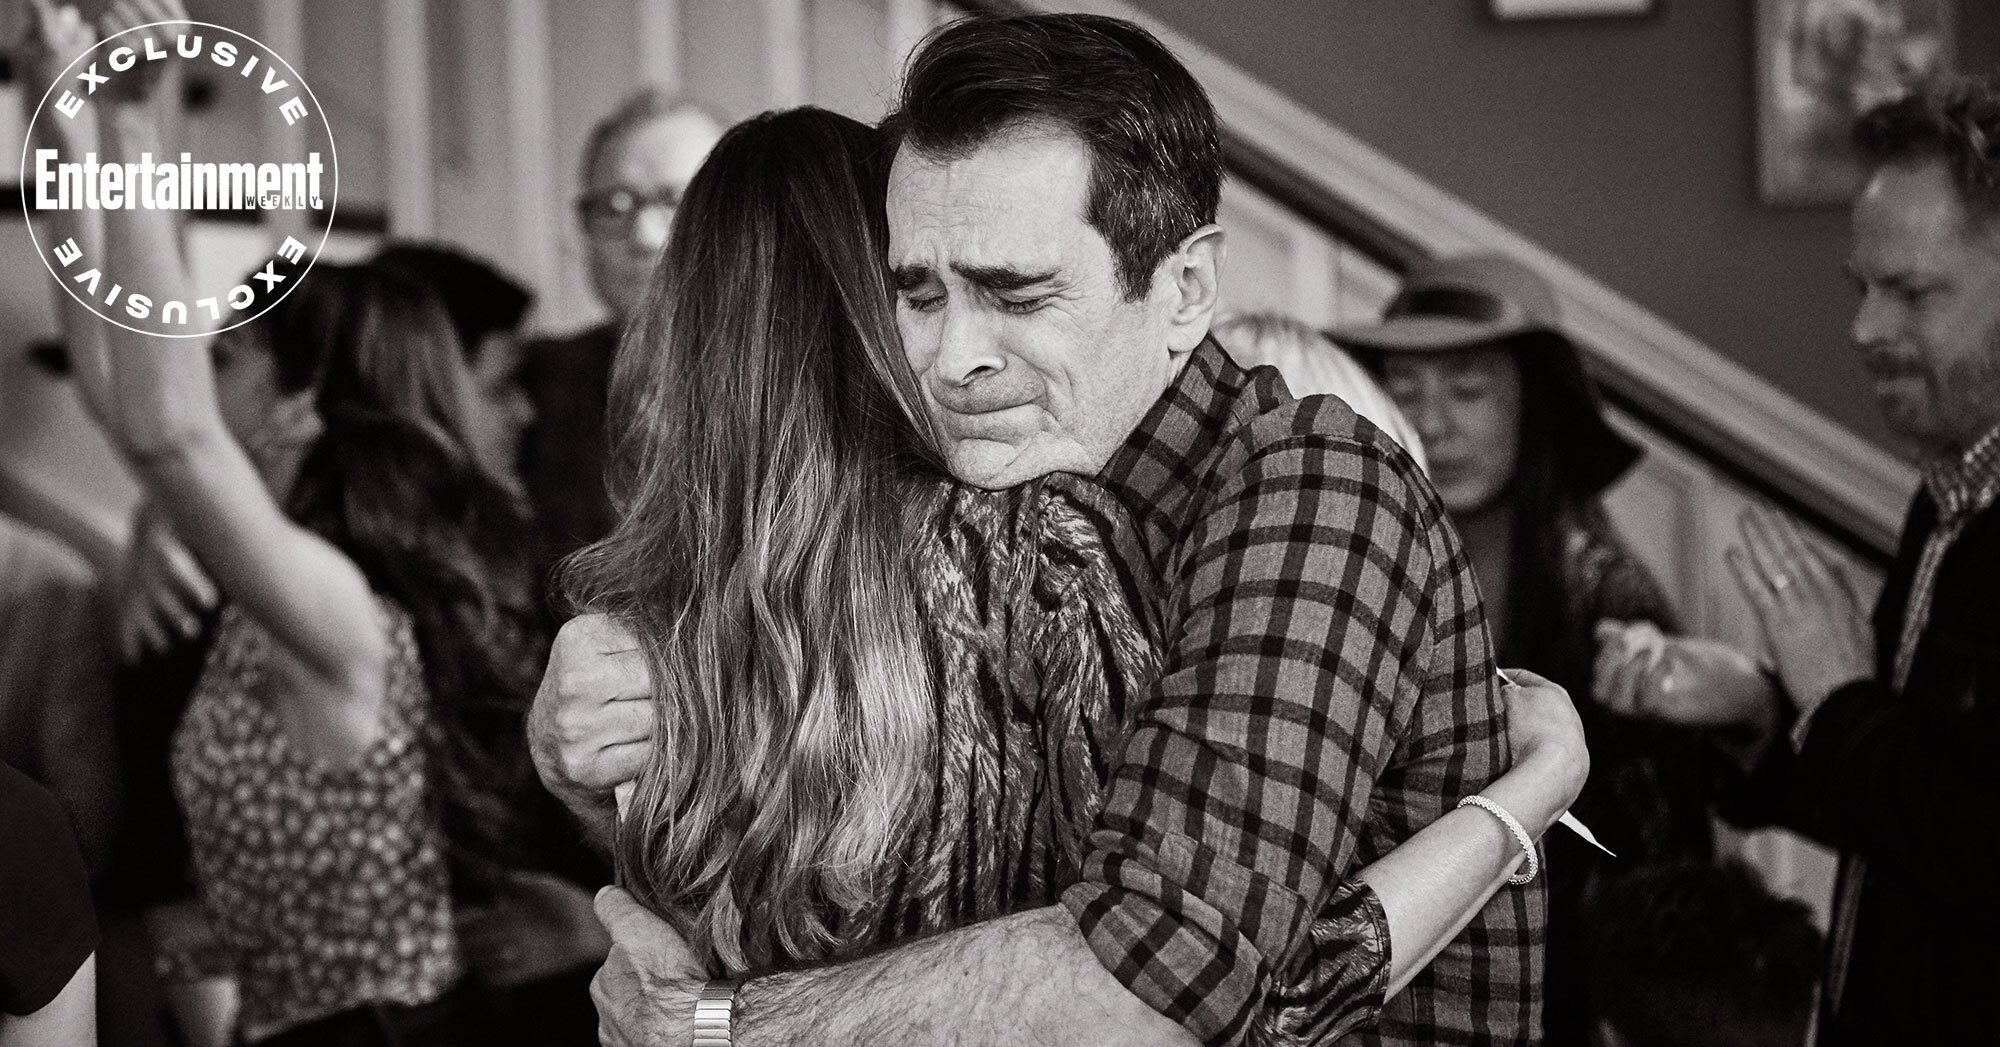 Modern Family finale: Cast says goodbye in emotional behind-the-scenes photos